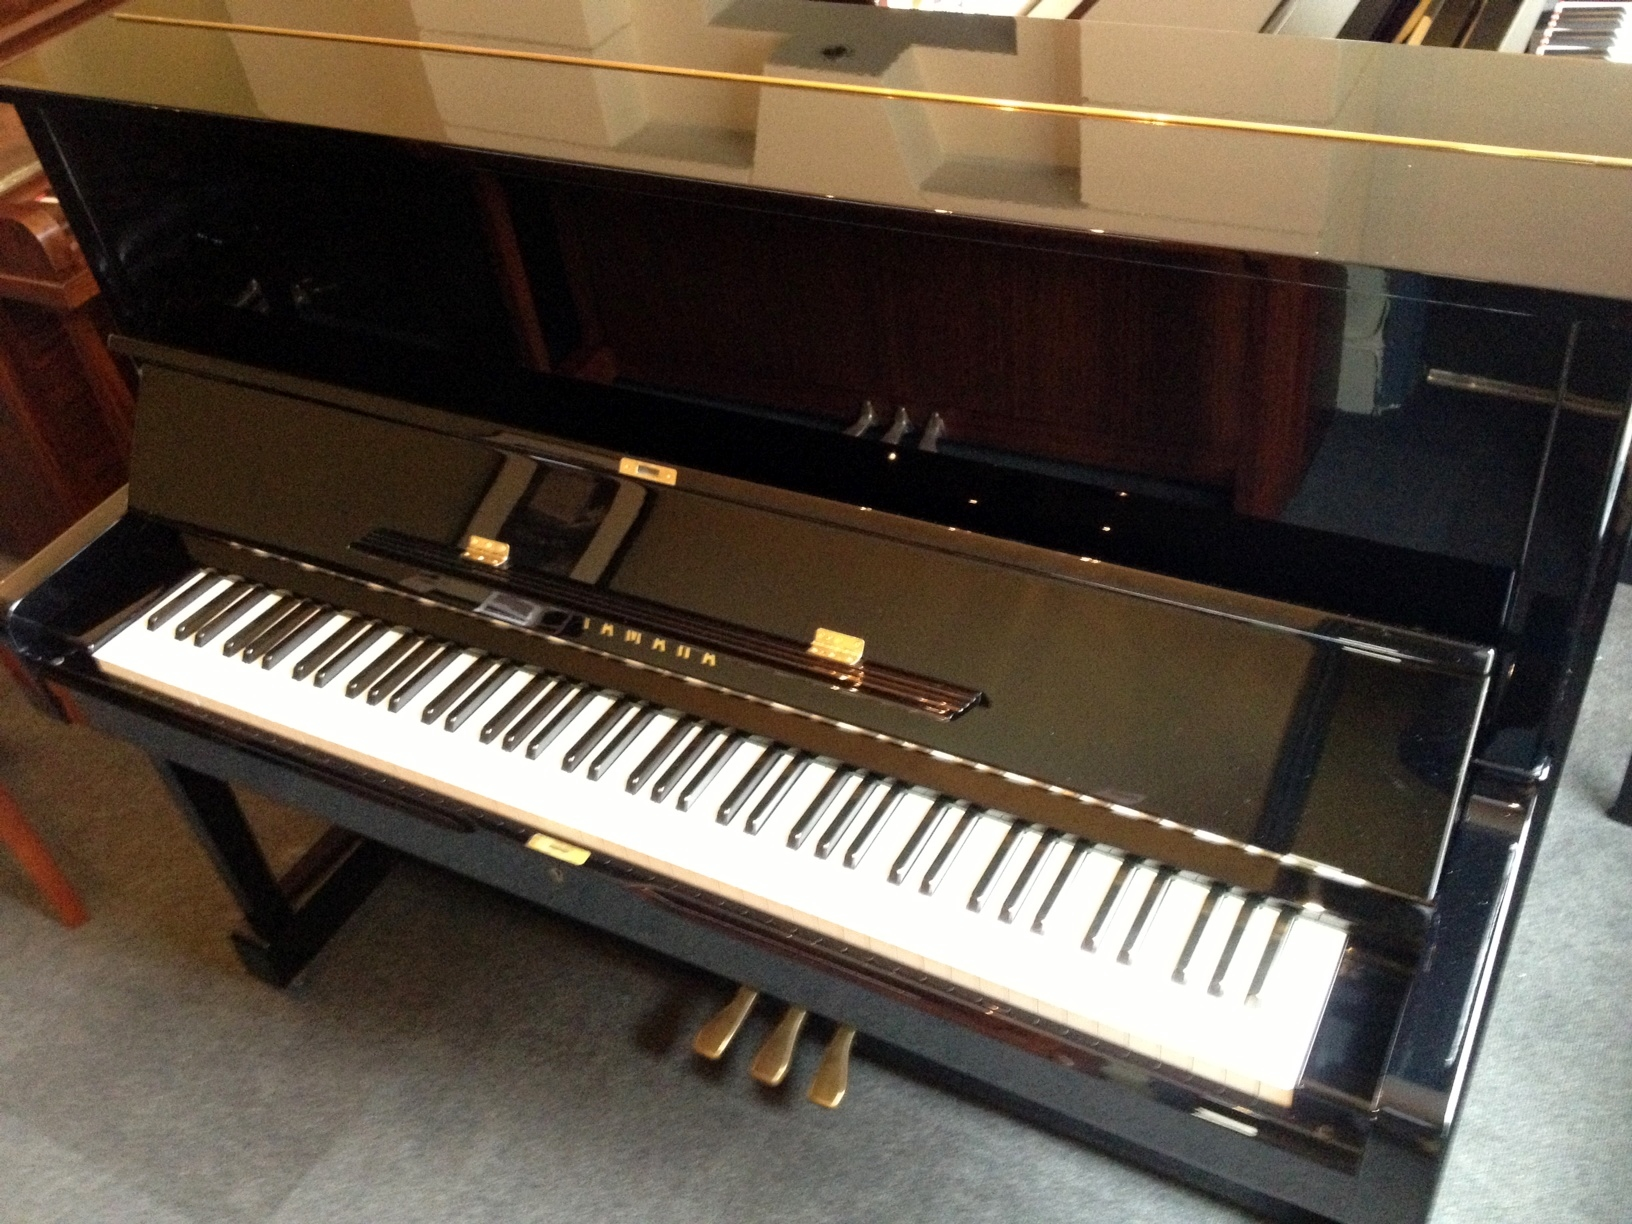 A Yamaha U1 piano in our showroom